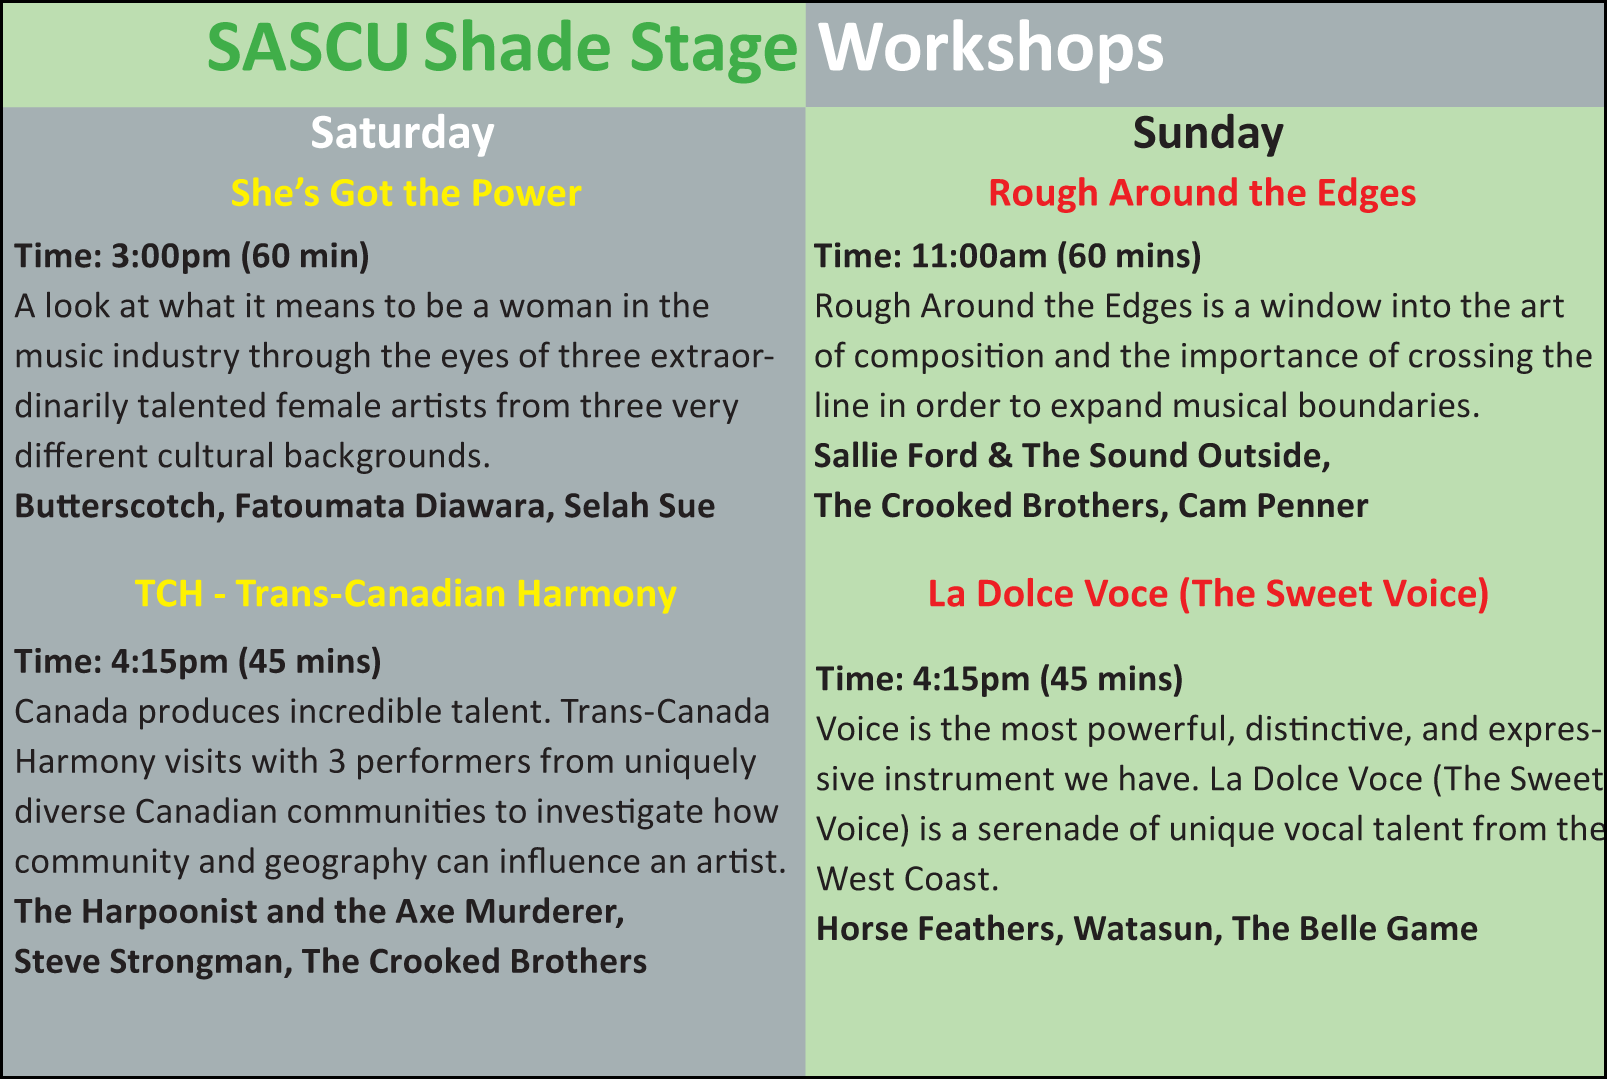 SASCUShadeStageWorkshops